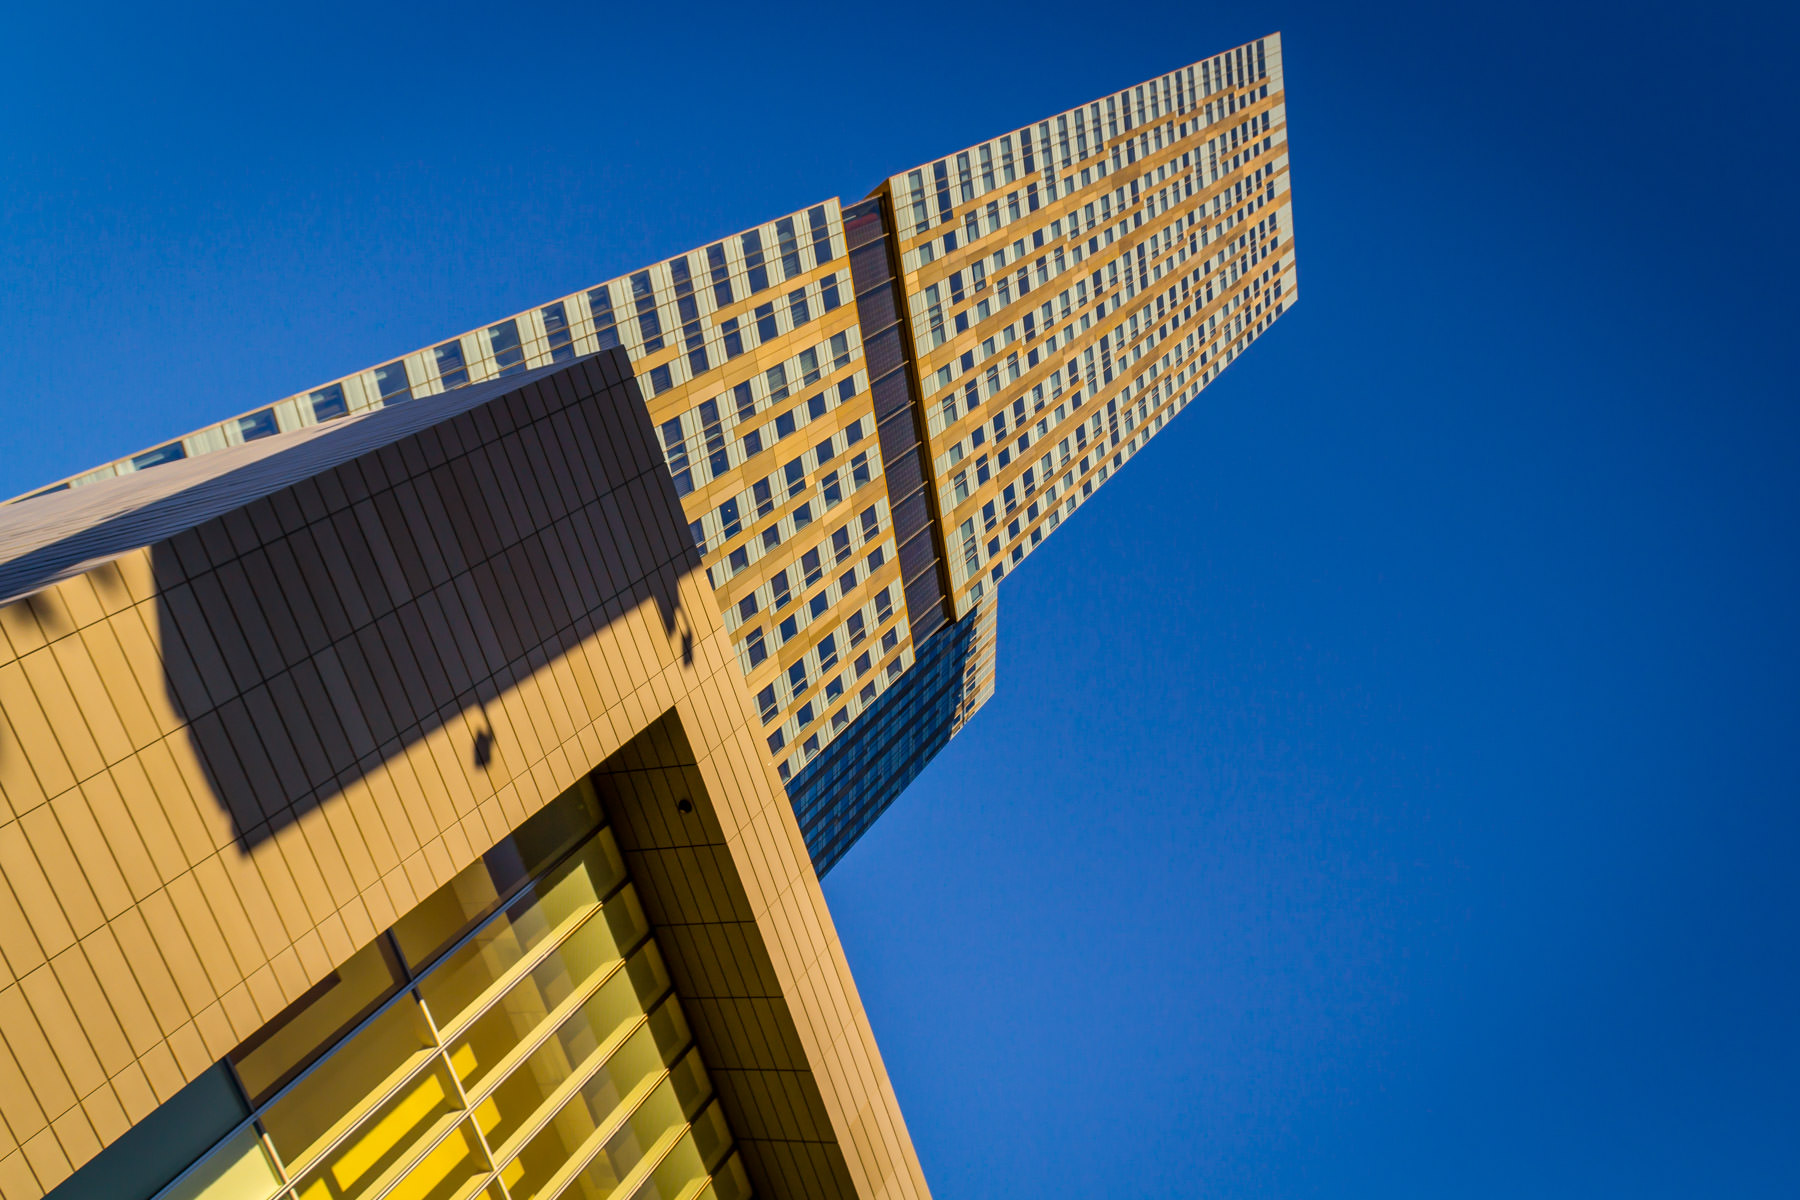 The 56-storey Mandarin Oriental rises into the Nevada desert sky at CityCenter, Las Vegas.